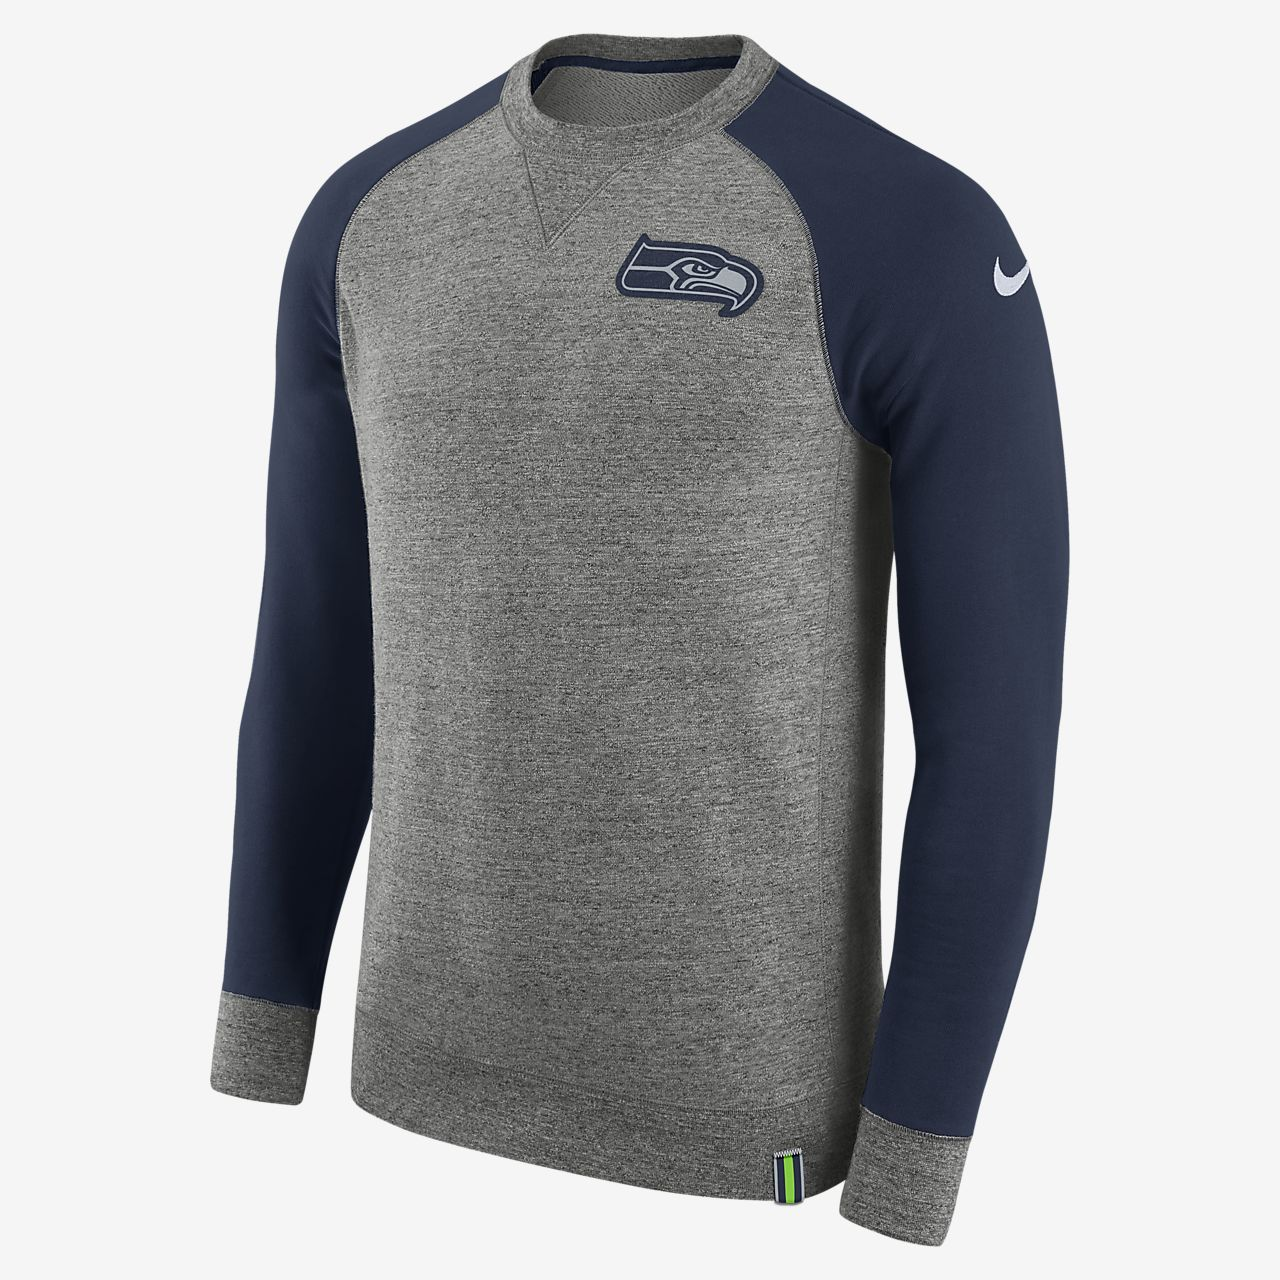 sweat shirt nike aw77 nfl seahawks pour homme be. Black Bedroom Furniture Sets. Home Design Ideas